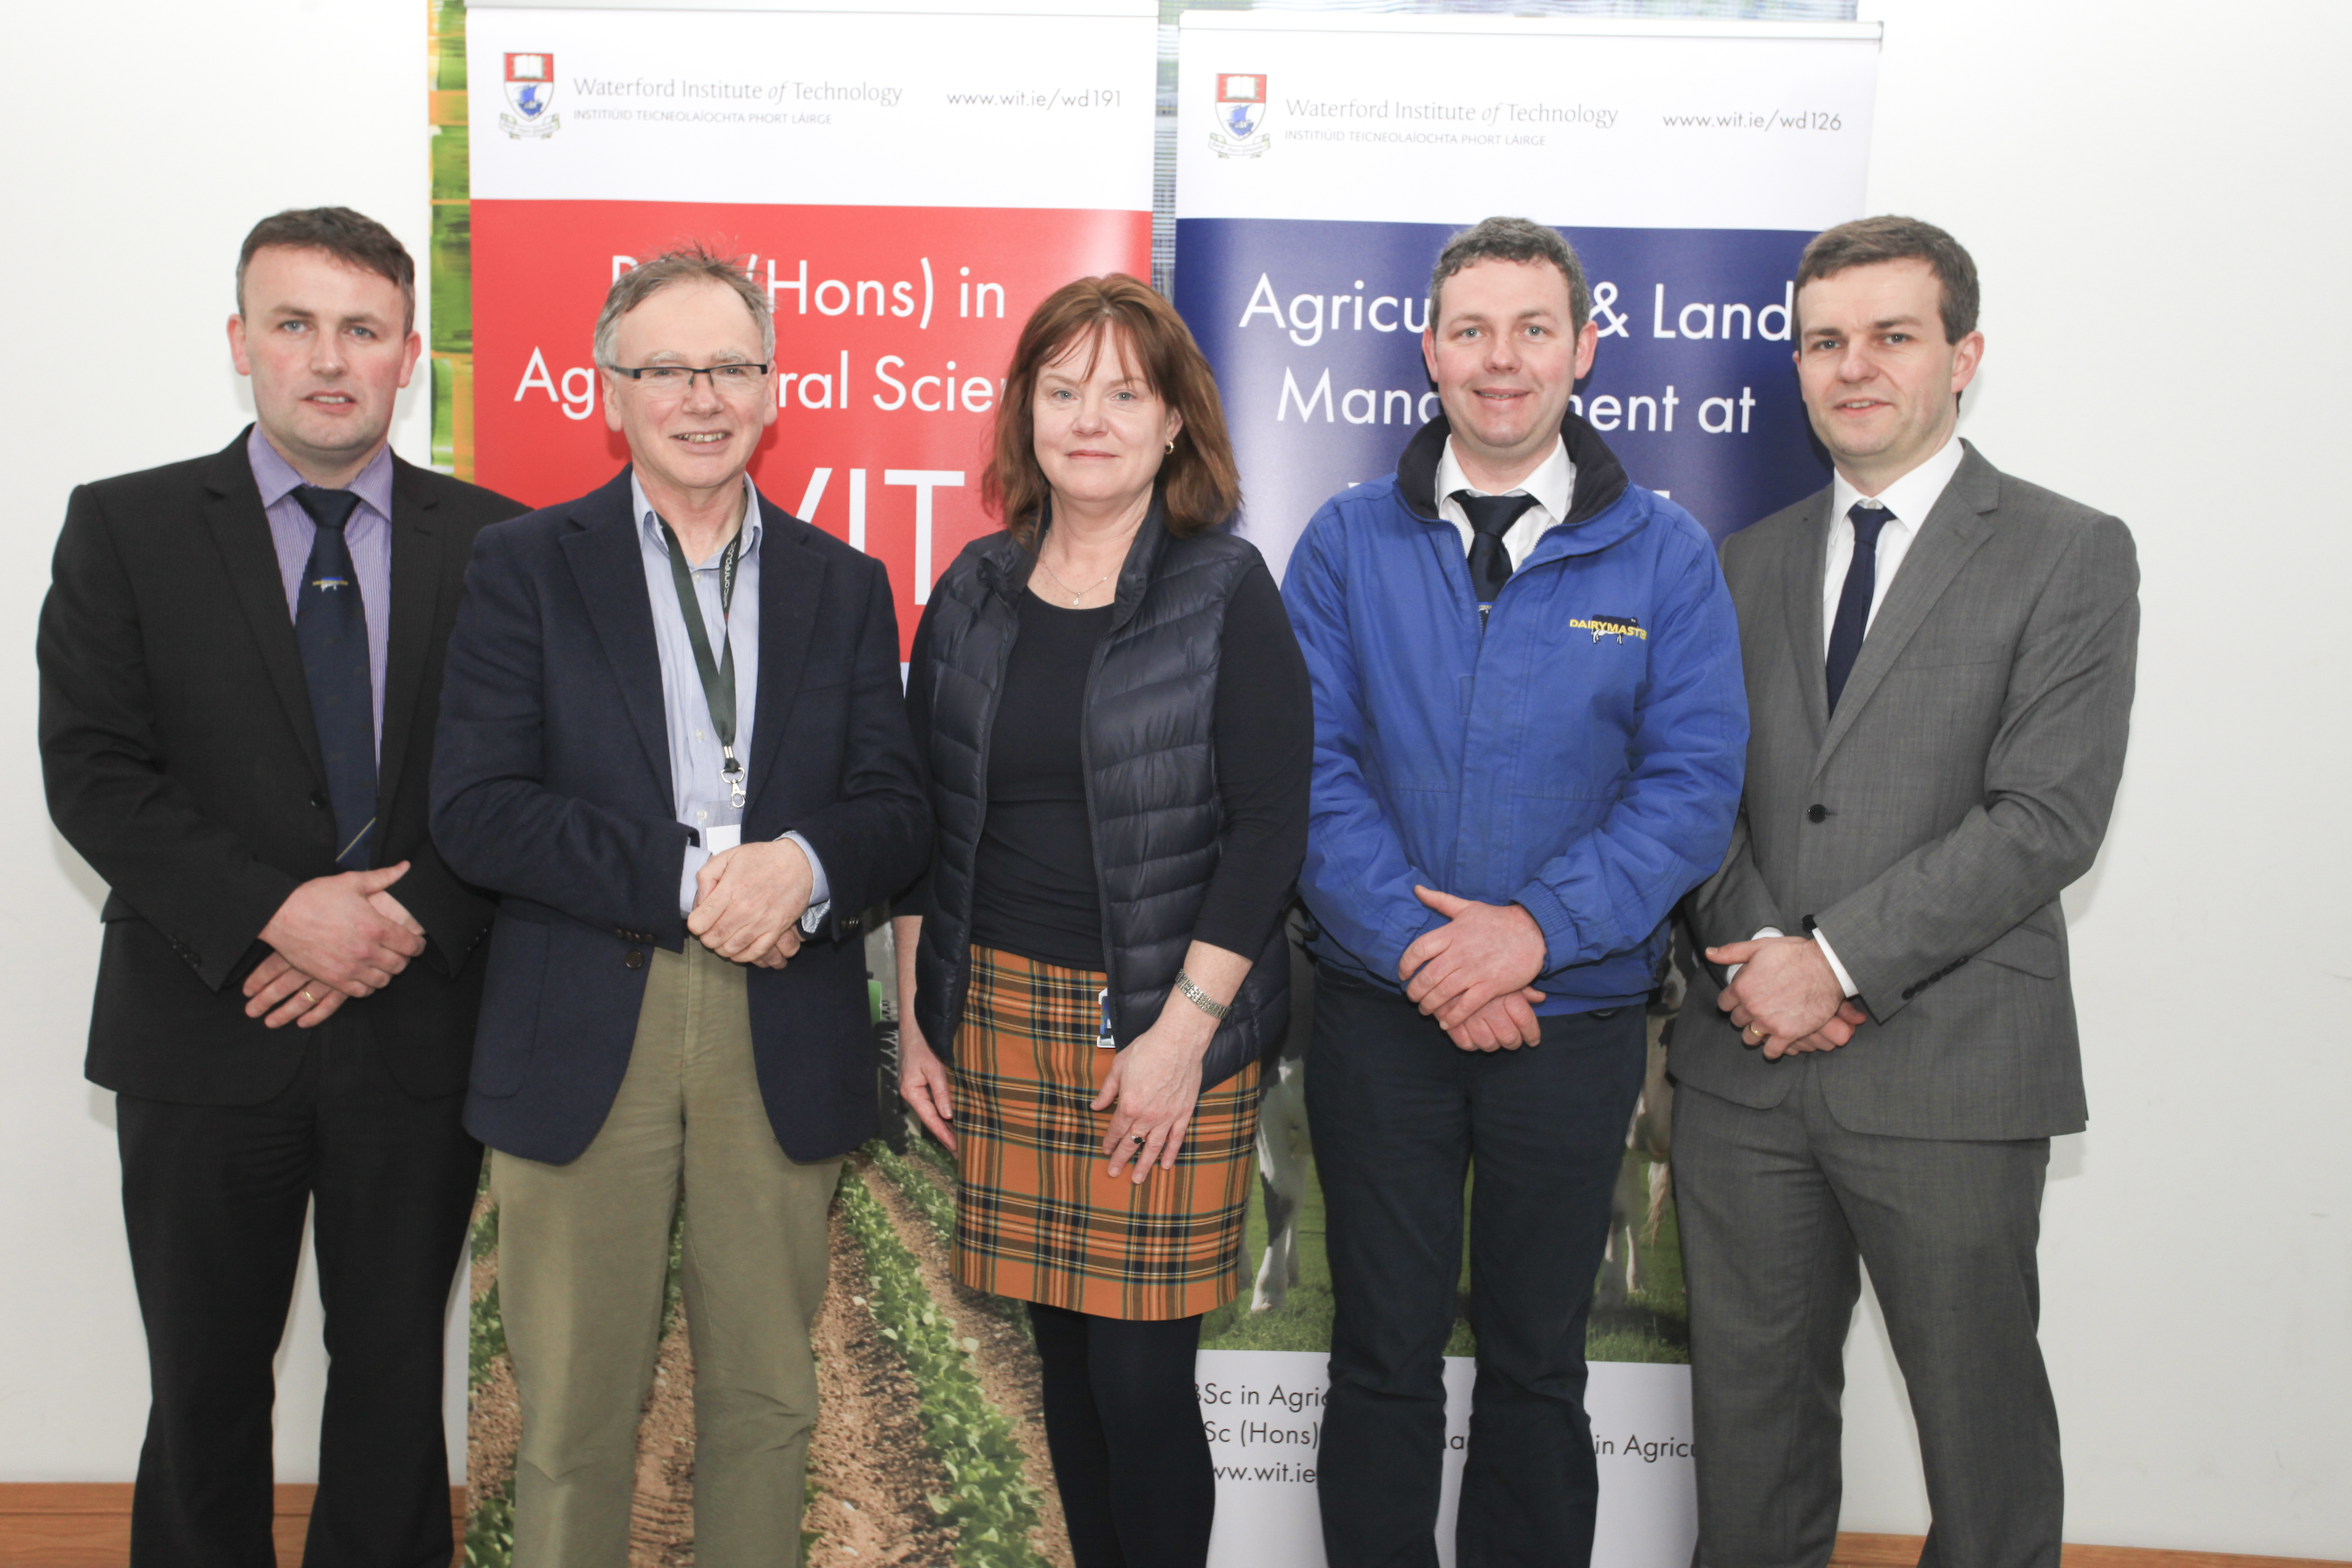 Pat Ryan, Business Development Manager of Dairymaster, Causeway, Co. Kerry, Prof Willie Donnelly, WIT President with Dr. Orla O' Donovan (Head of Dept. of Science, WIT) with Tom Cummins, Stradbally, Co. Laois, Regional Sales Representative for Dairymaster and Dr. Michael Breen programme leader for the BSc (Hons) in Agricultural Science at WIT